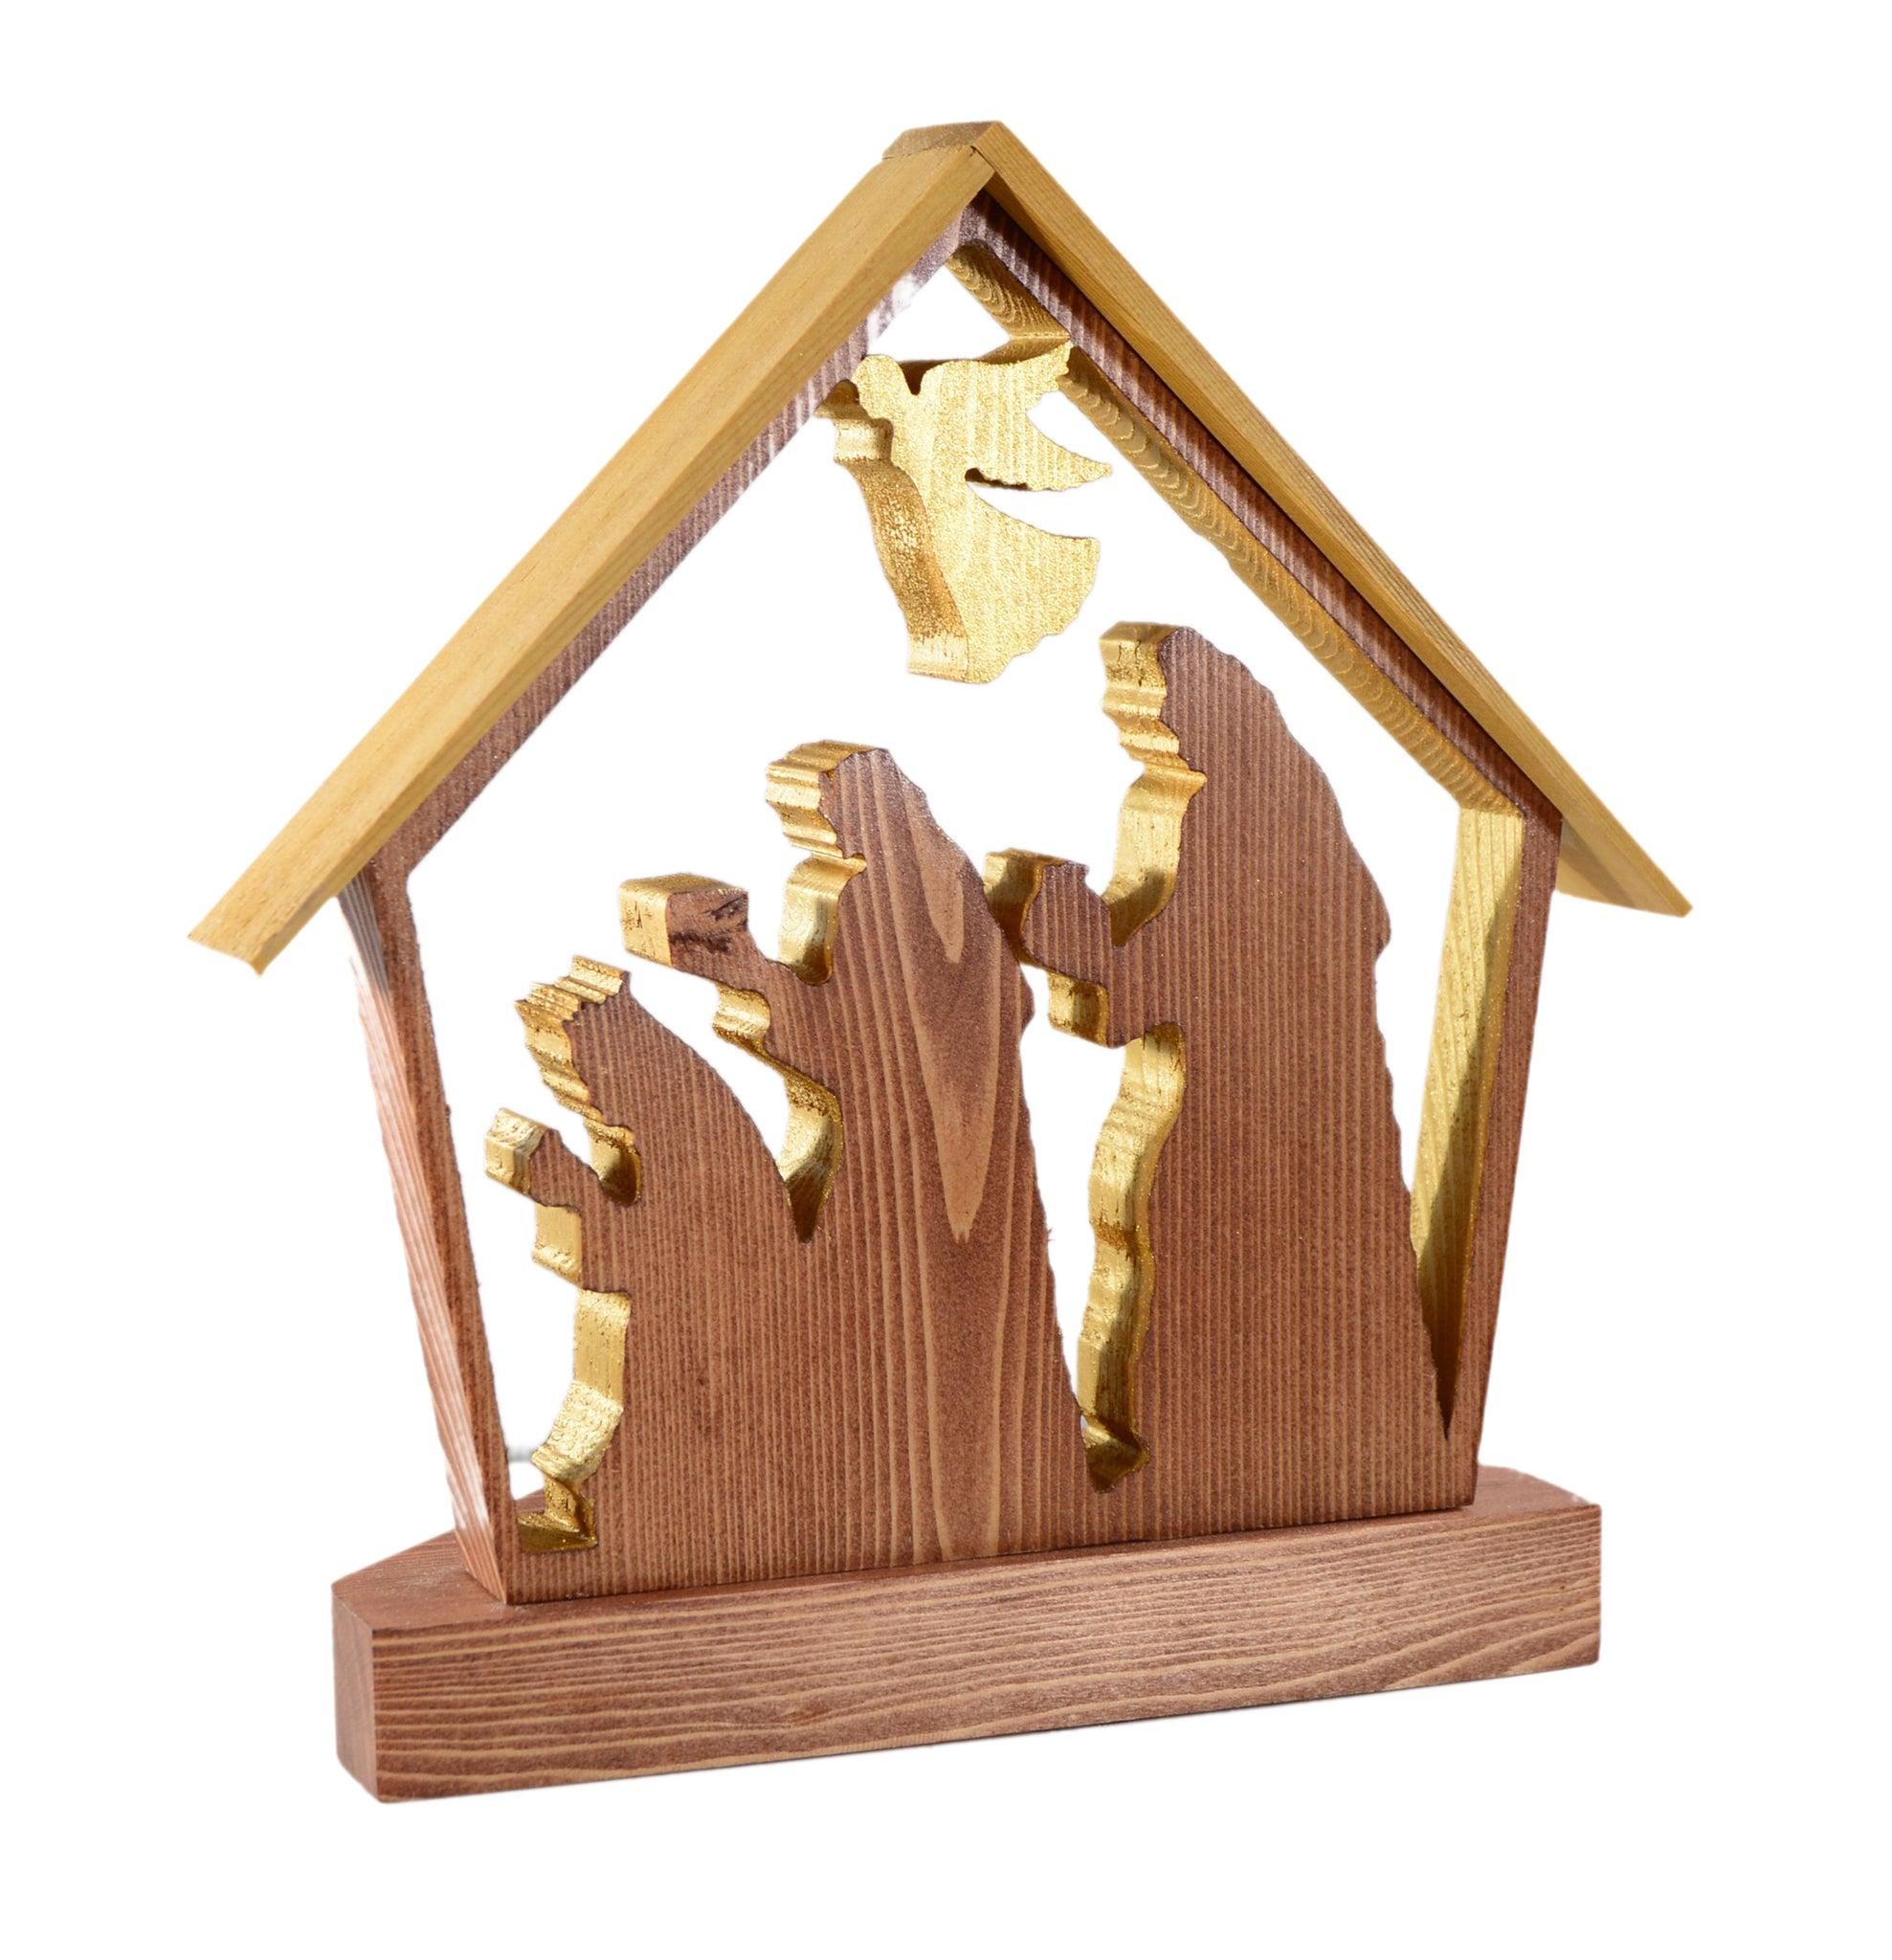 SHEPARD AND ANGLES LED CANDLES SET OF 3 WISEMEN 6 Hour Timer NATIVITY SCENE